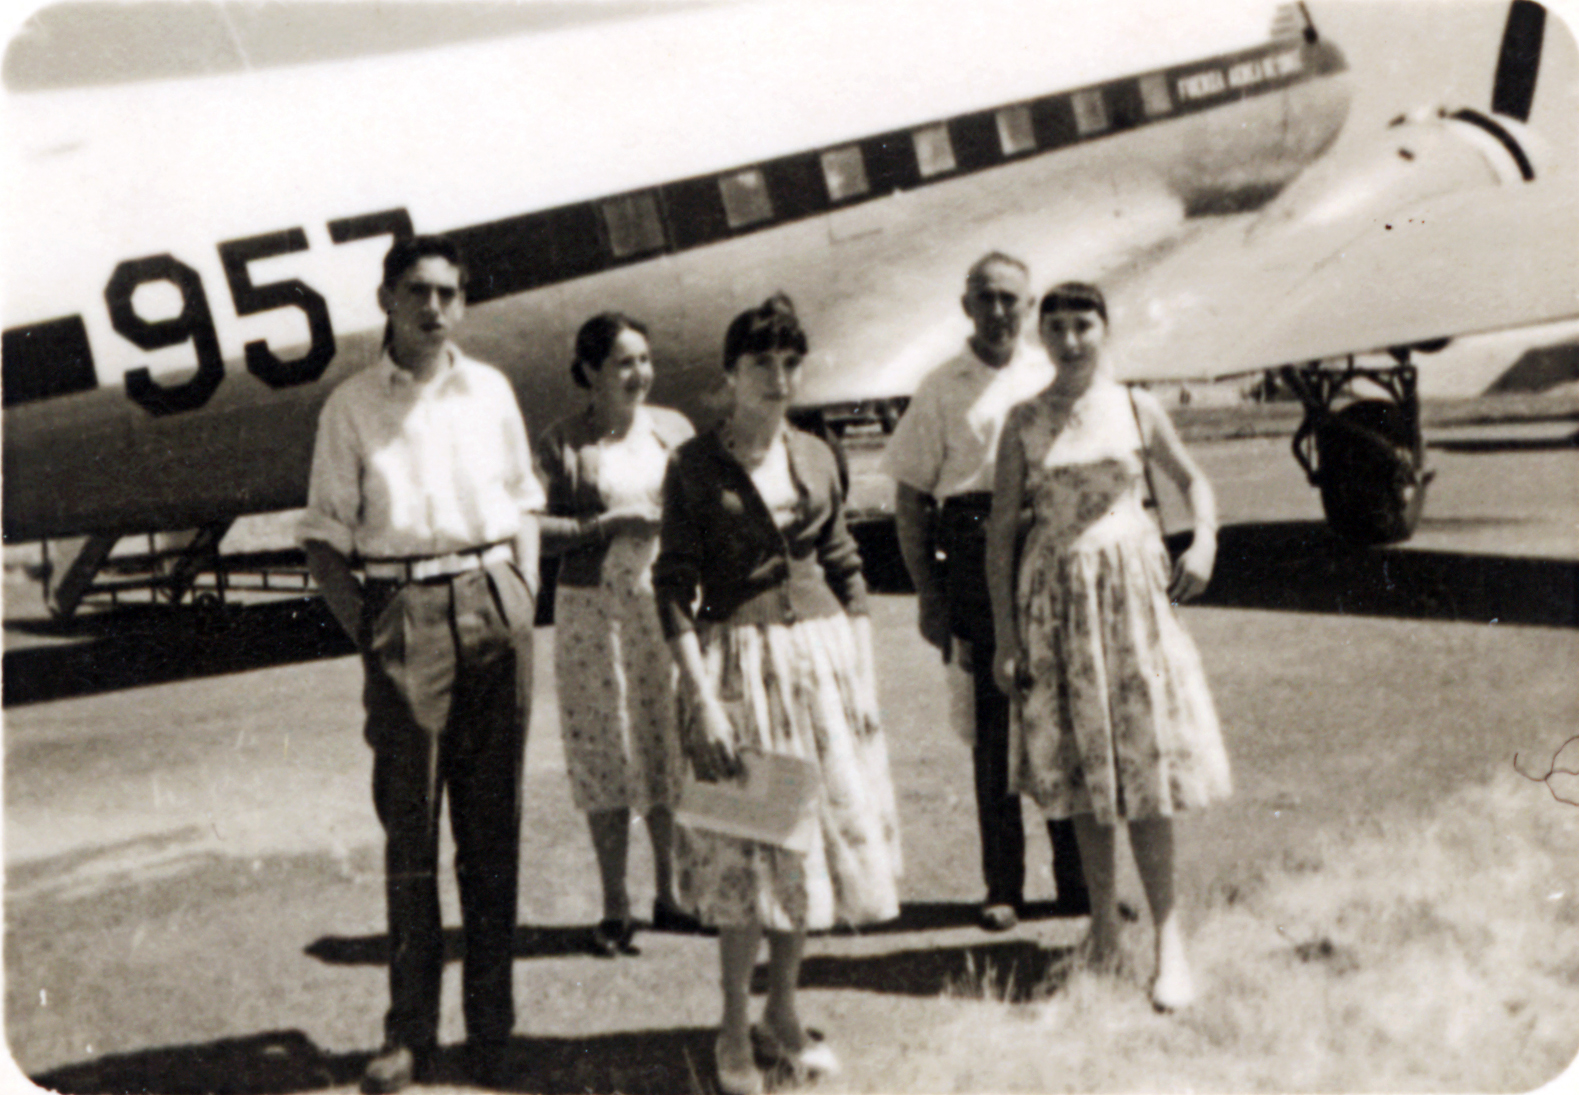 Enterreno - Fotos históricas de chile - fotos antiguas de Chile - Regresando de un vuelo en 1958